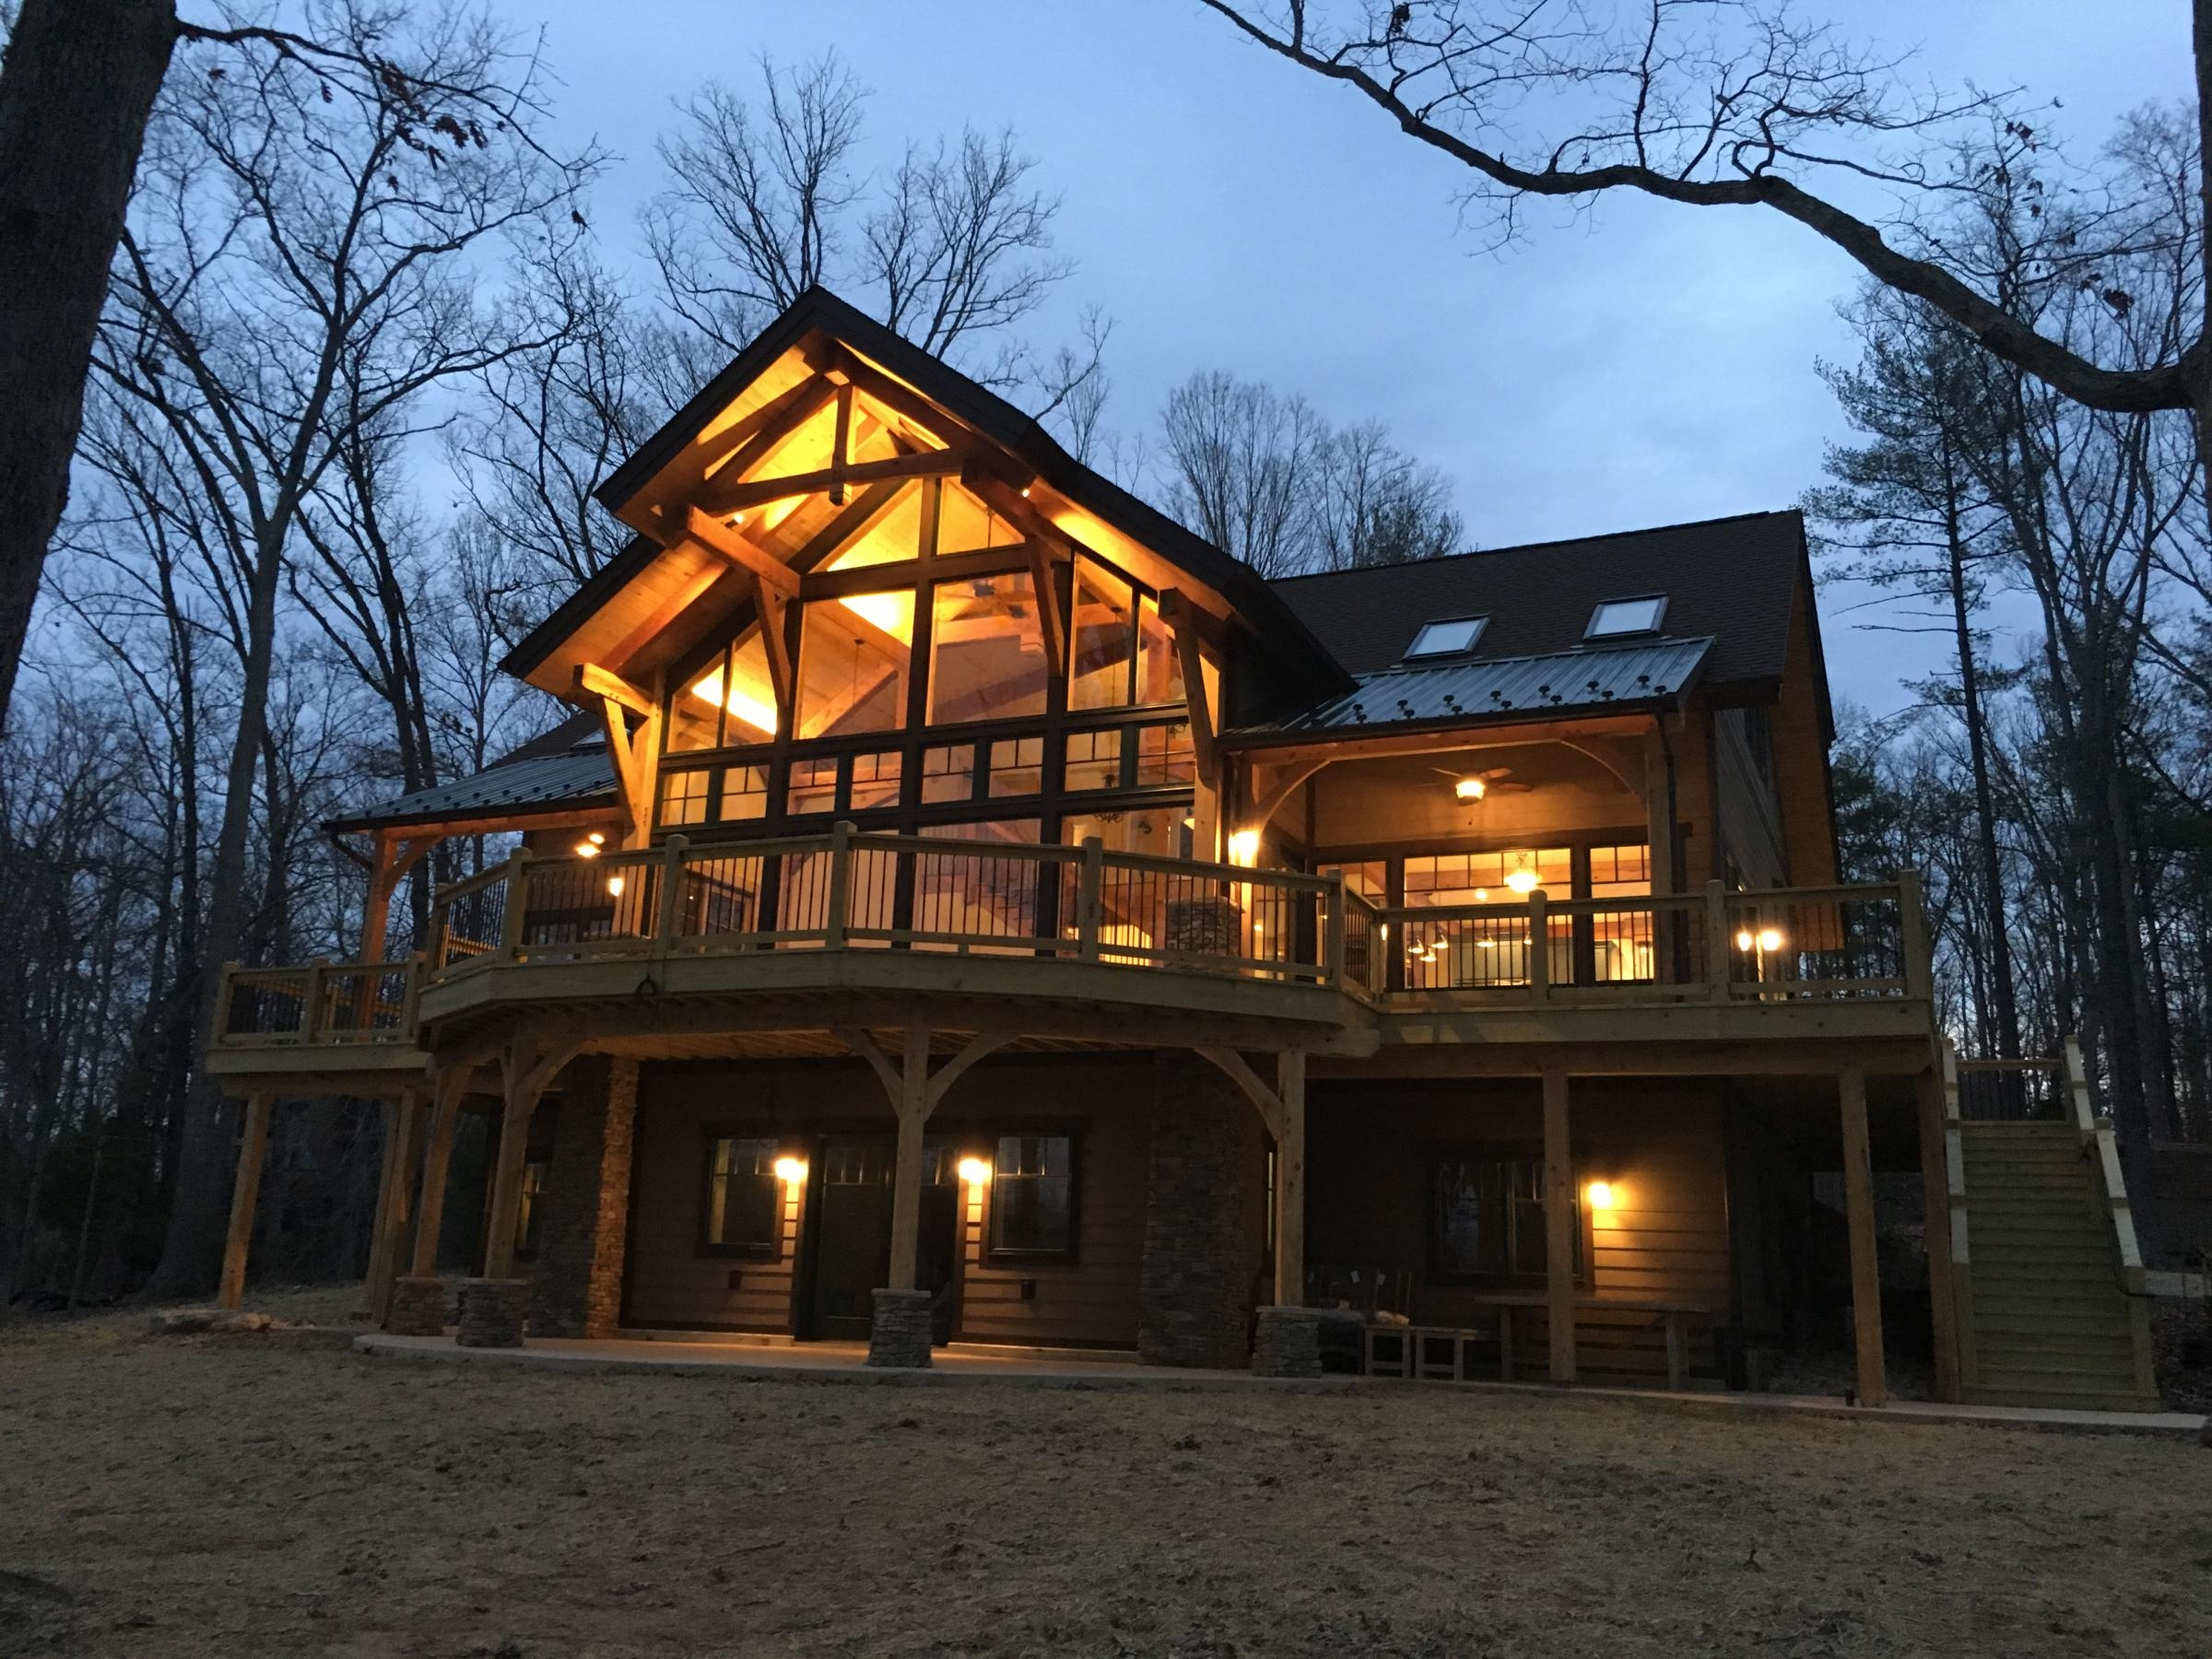 New custom log home construction exterior shot